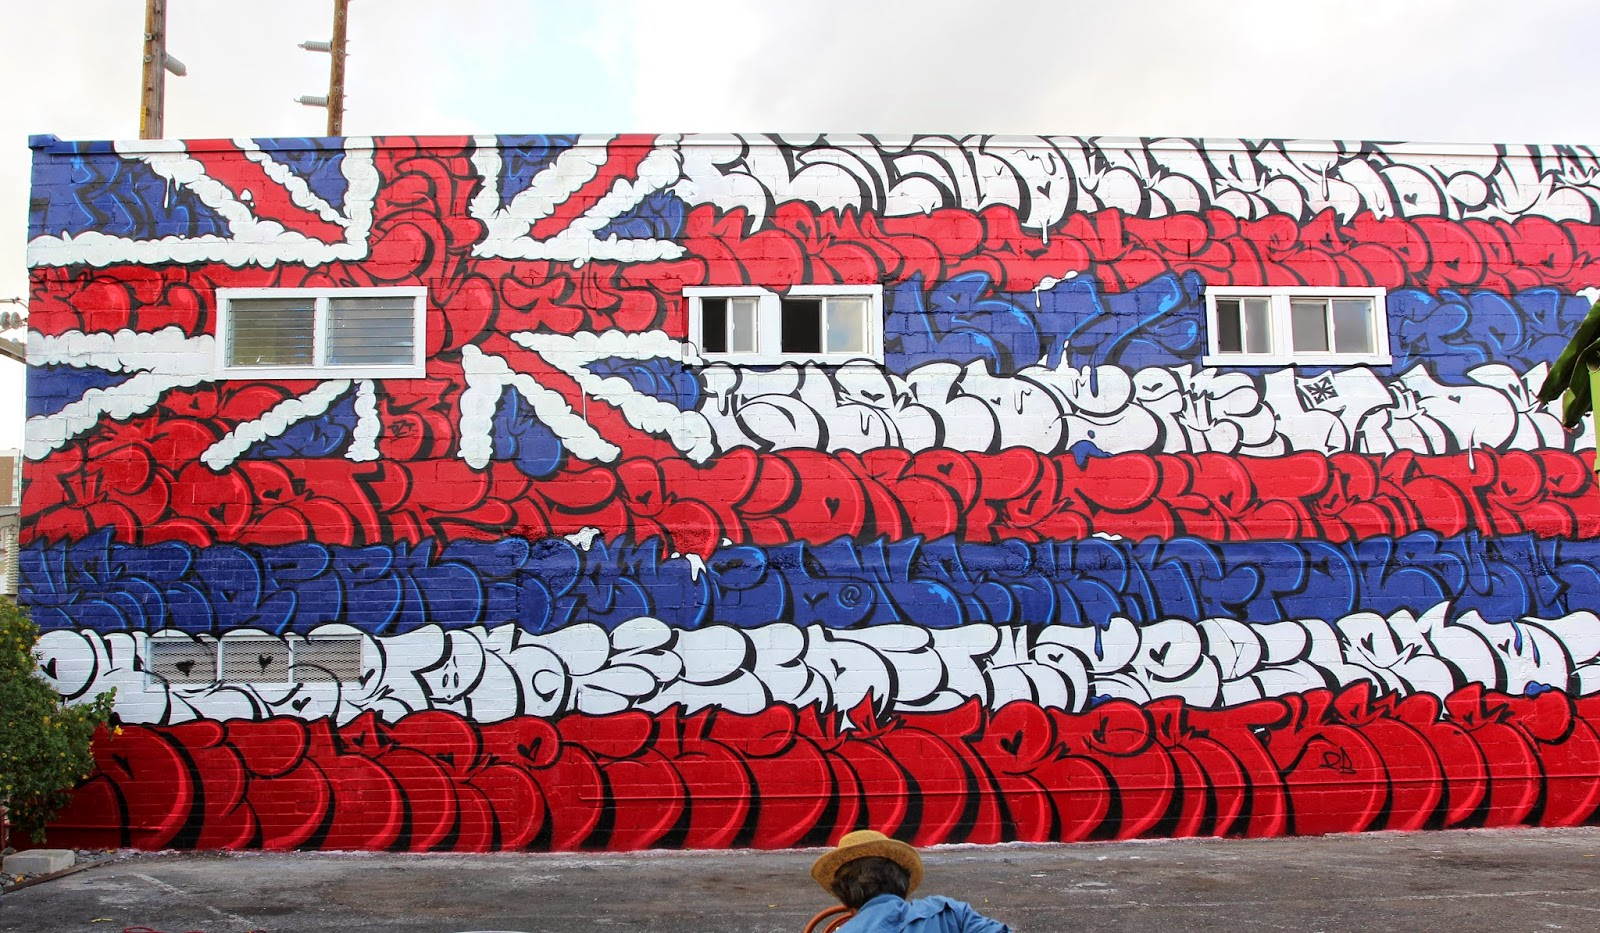 "OG Slick is also part of POW! WOW! '15's stellar line-up where he was invited to work on a massive building. Using the Hawaiian flag as a canvas for his letter, it took almost a week for the OG Slick to wrap up this piece entitled ""Can't Save The Queen""."